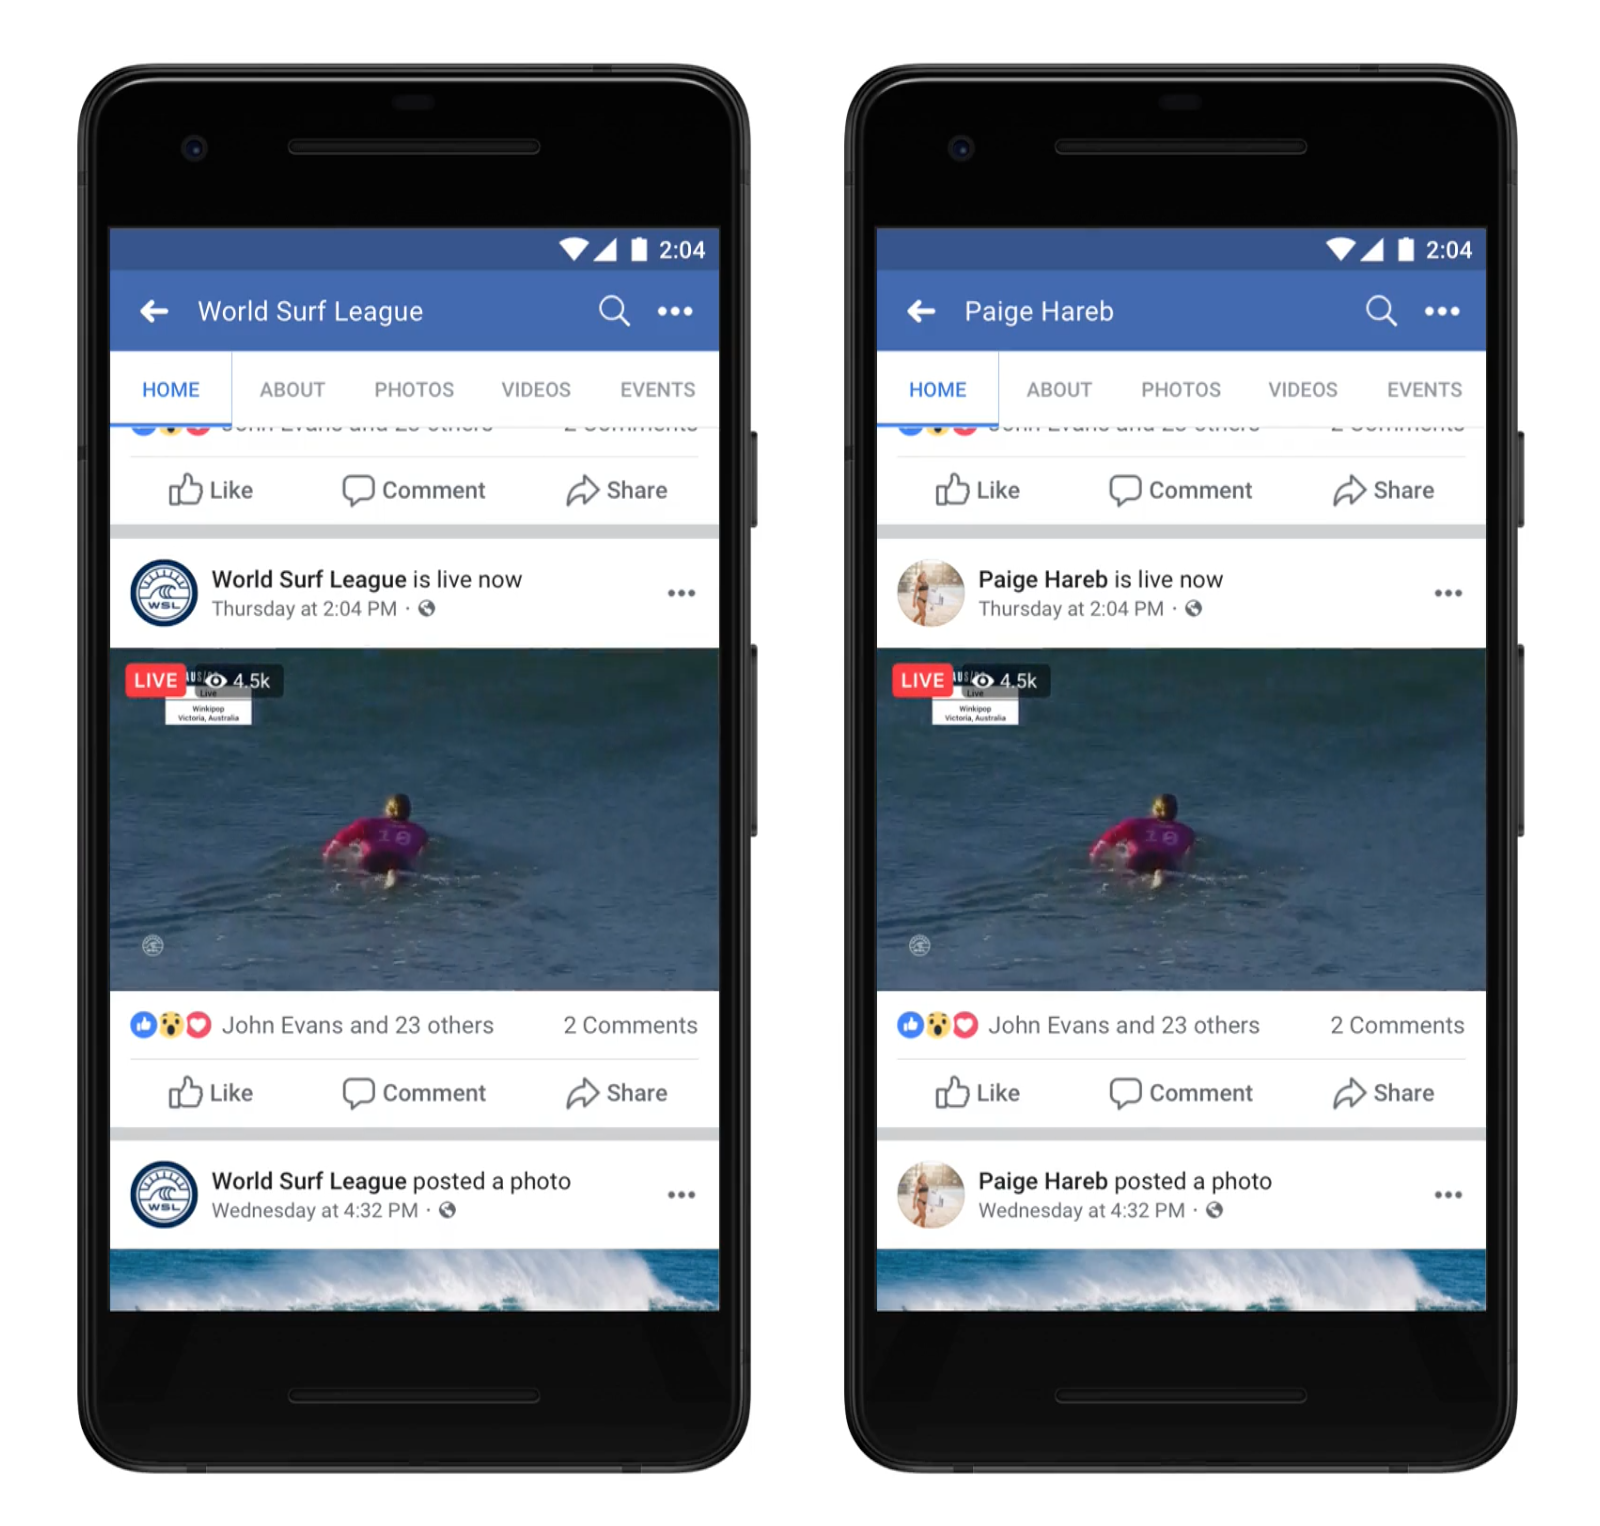 Facebook is testing the ability to rewind live stream video